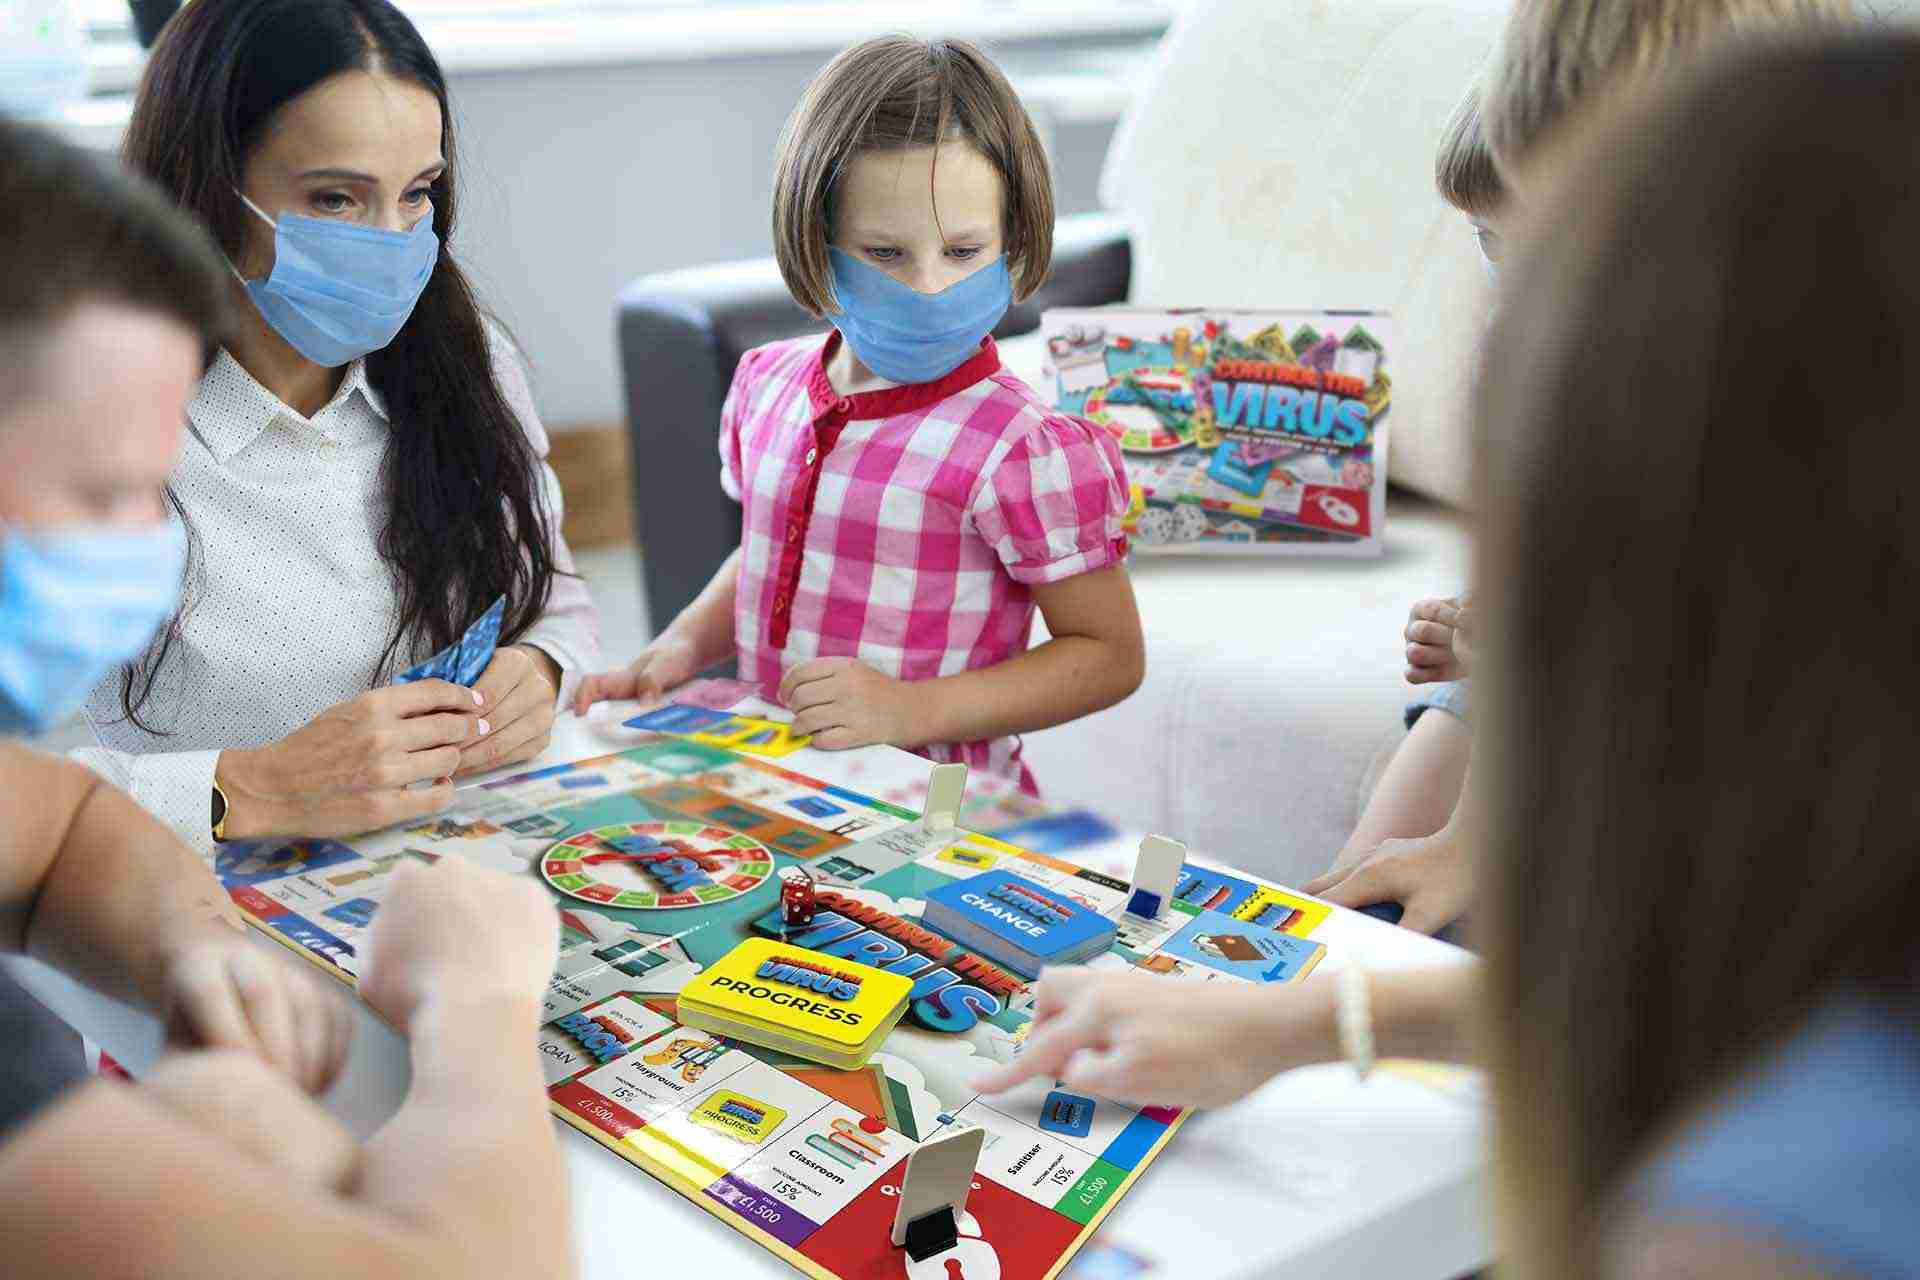 Adults and children in medical protective masks play board games